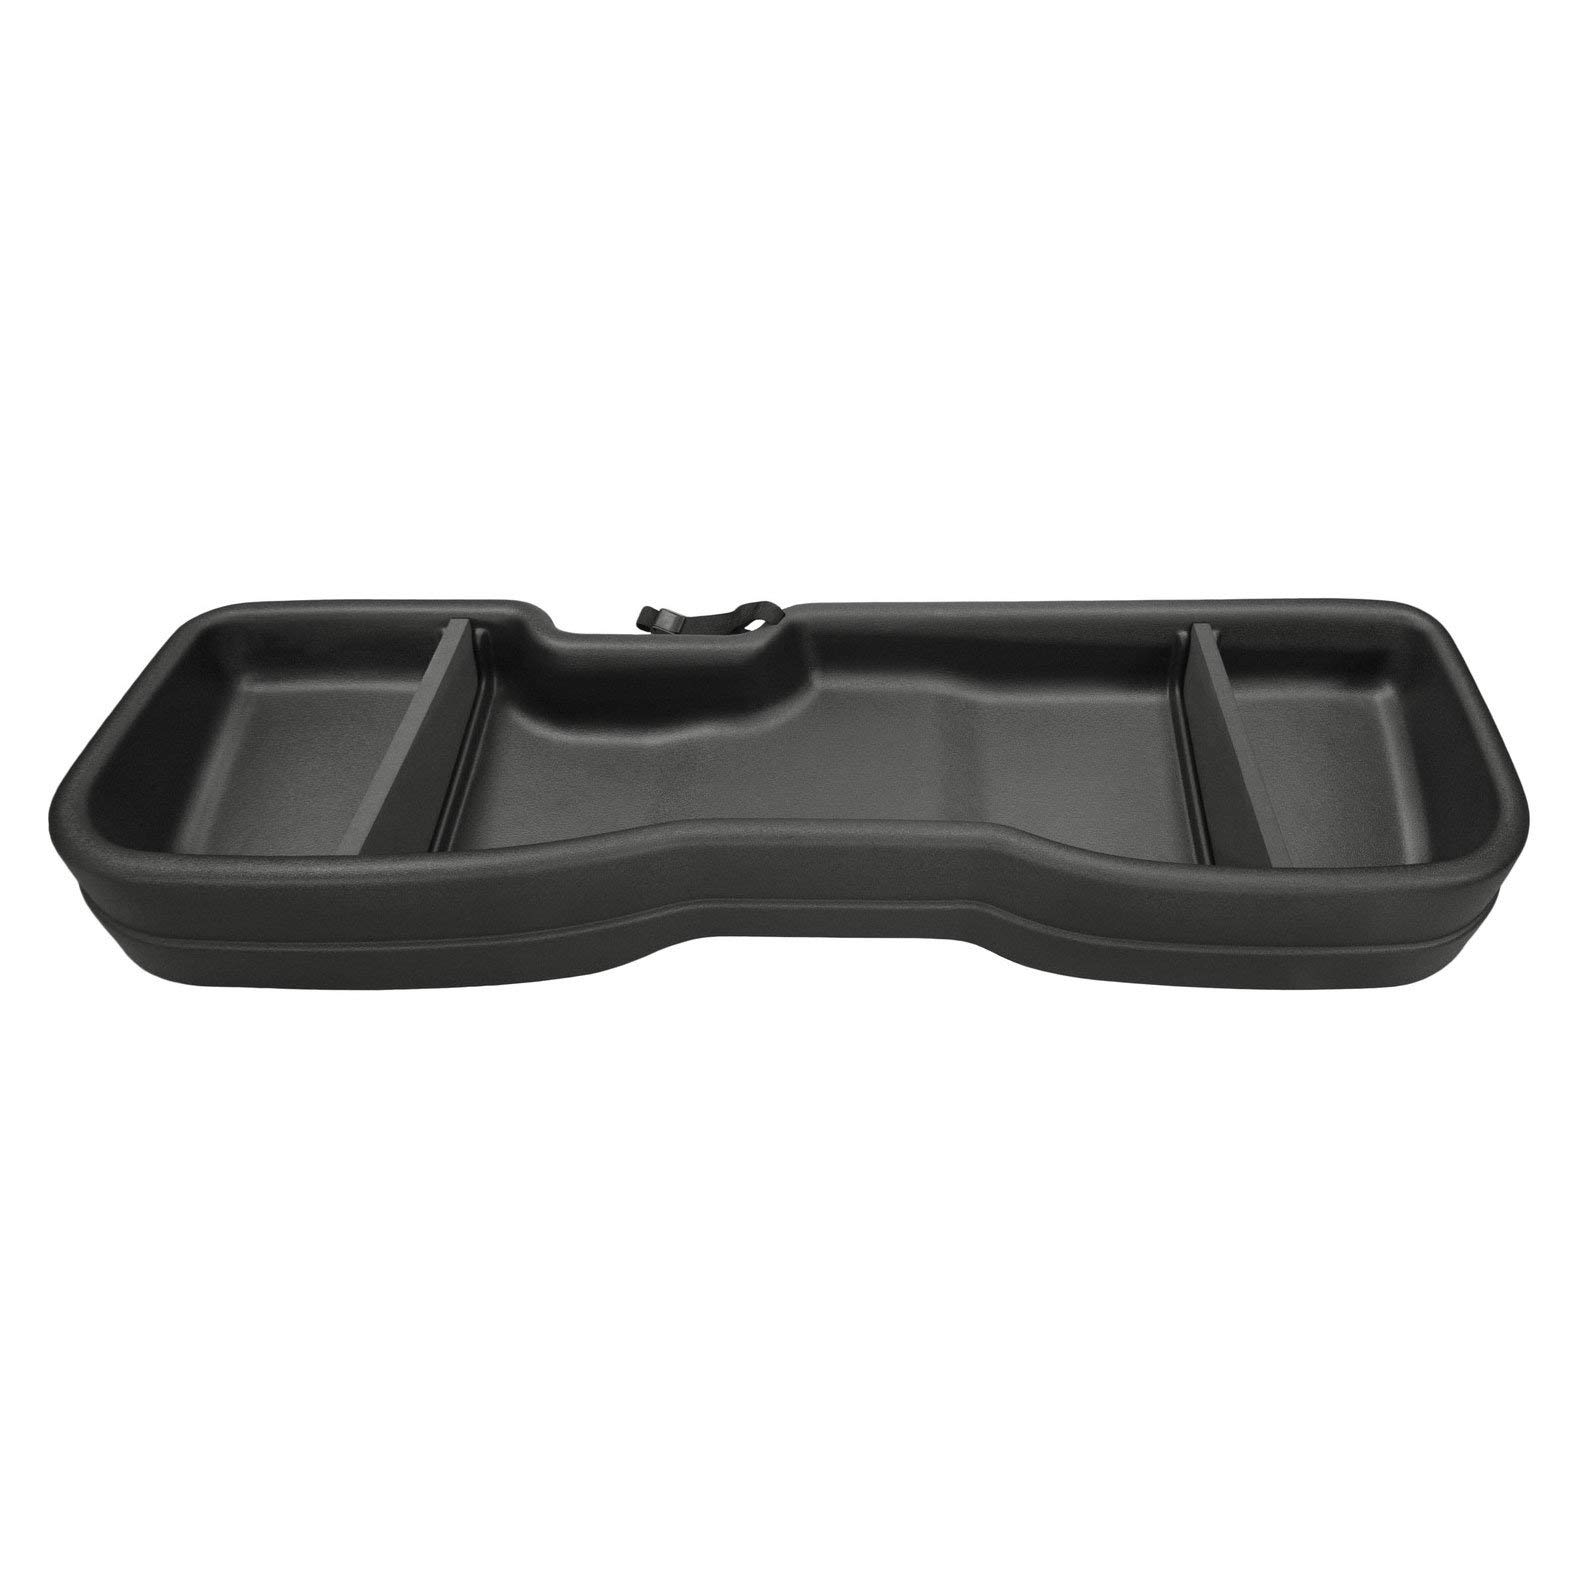 Husky Liners 09031 GearBox Black Under Seat Storage Box by Husky Liners